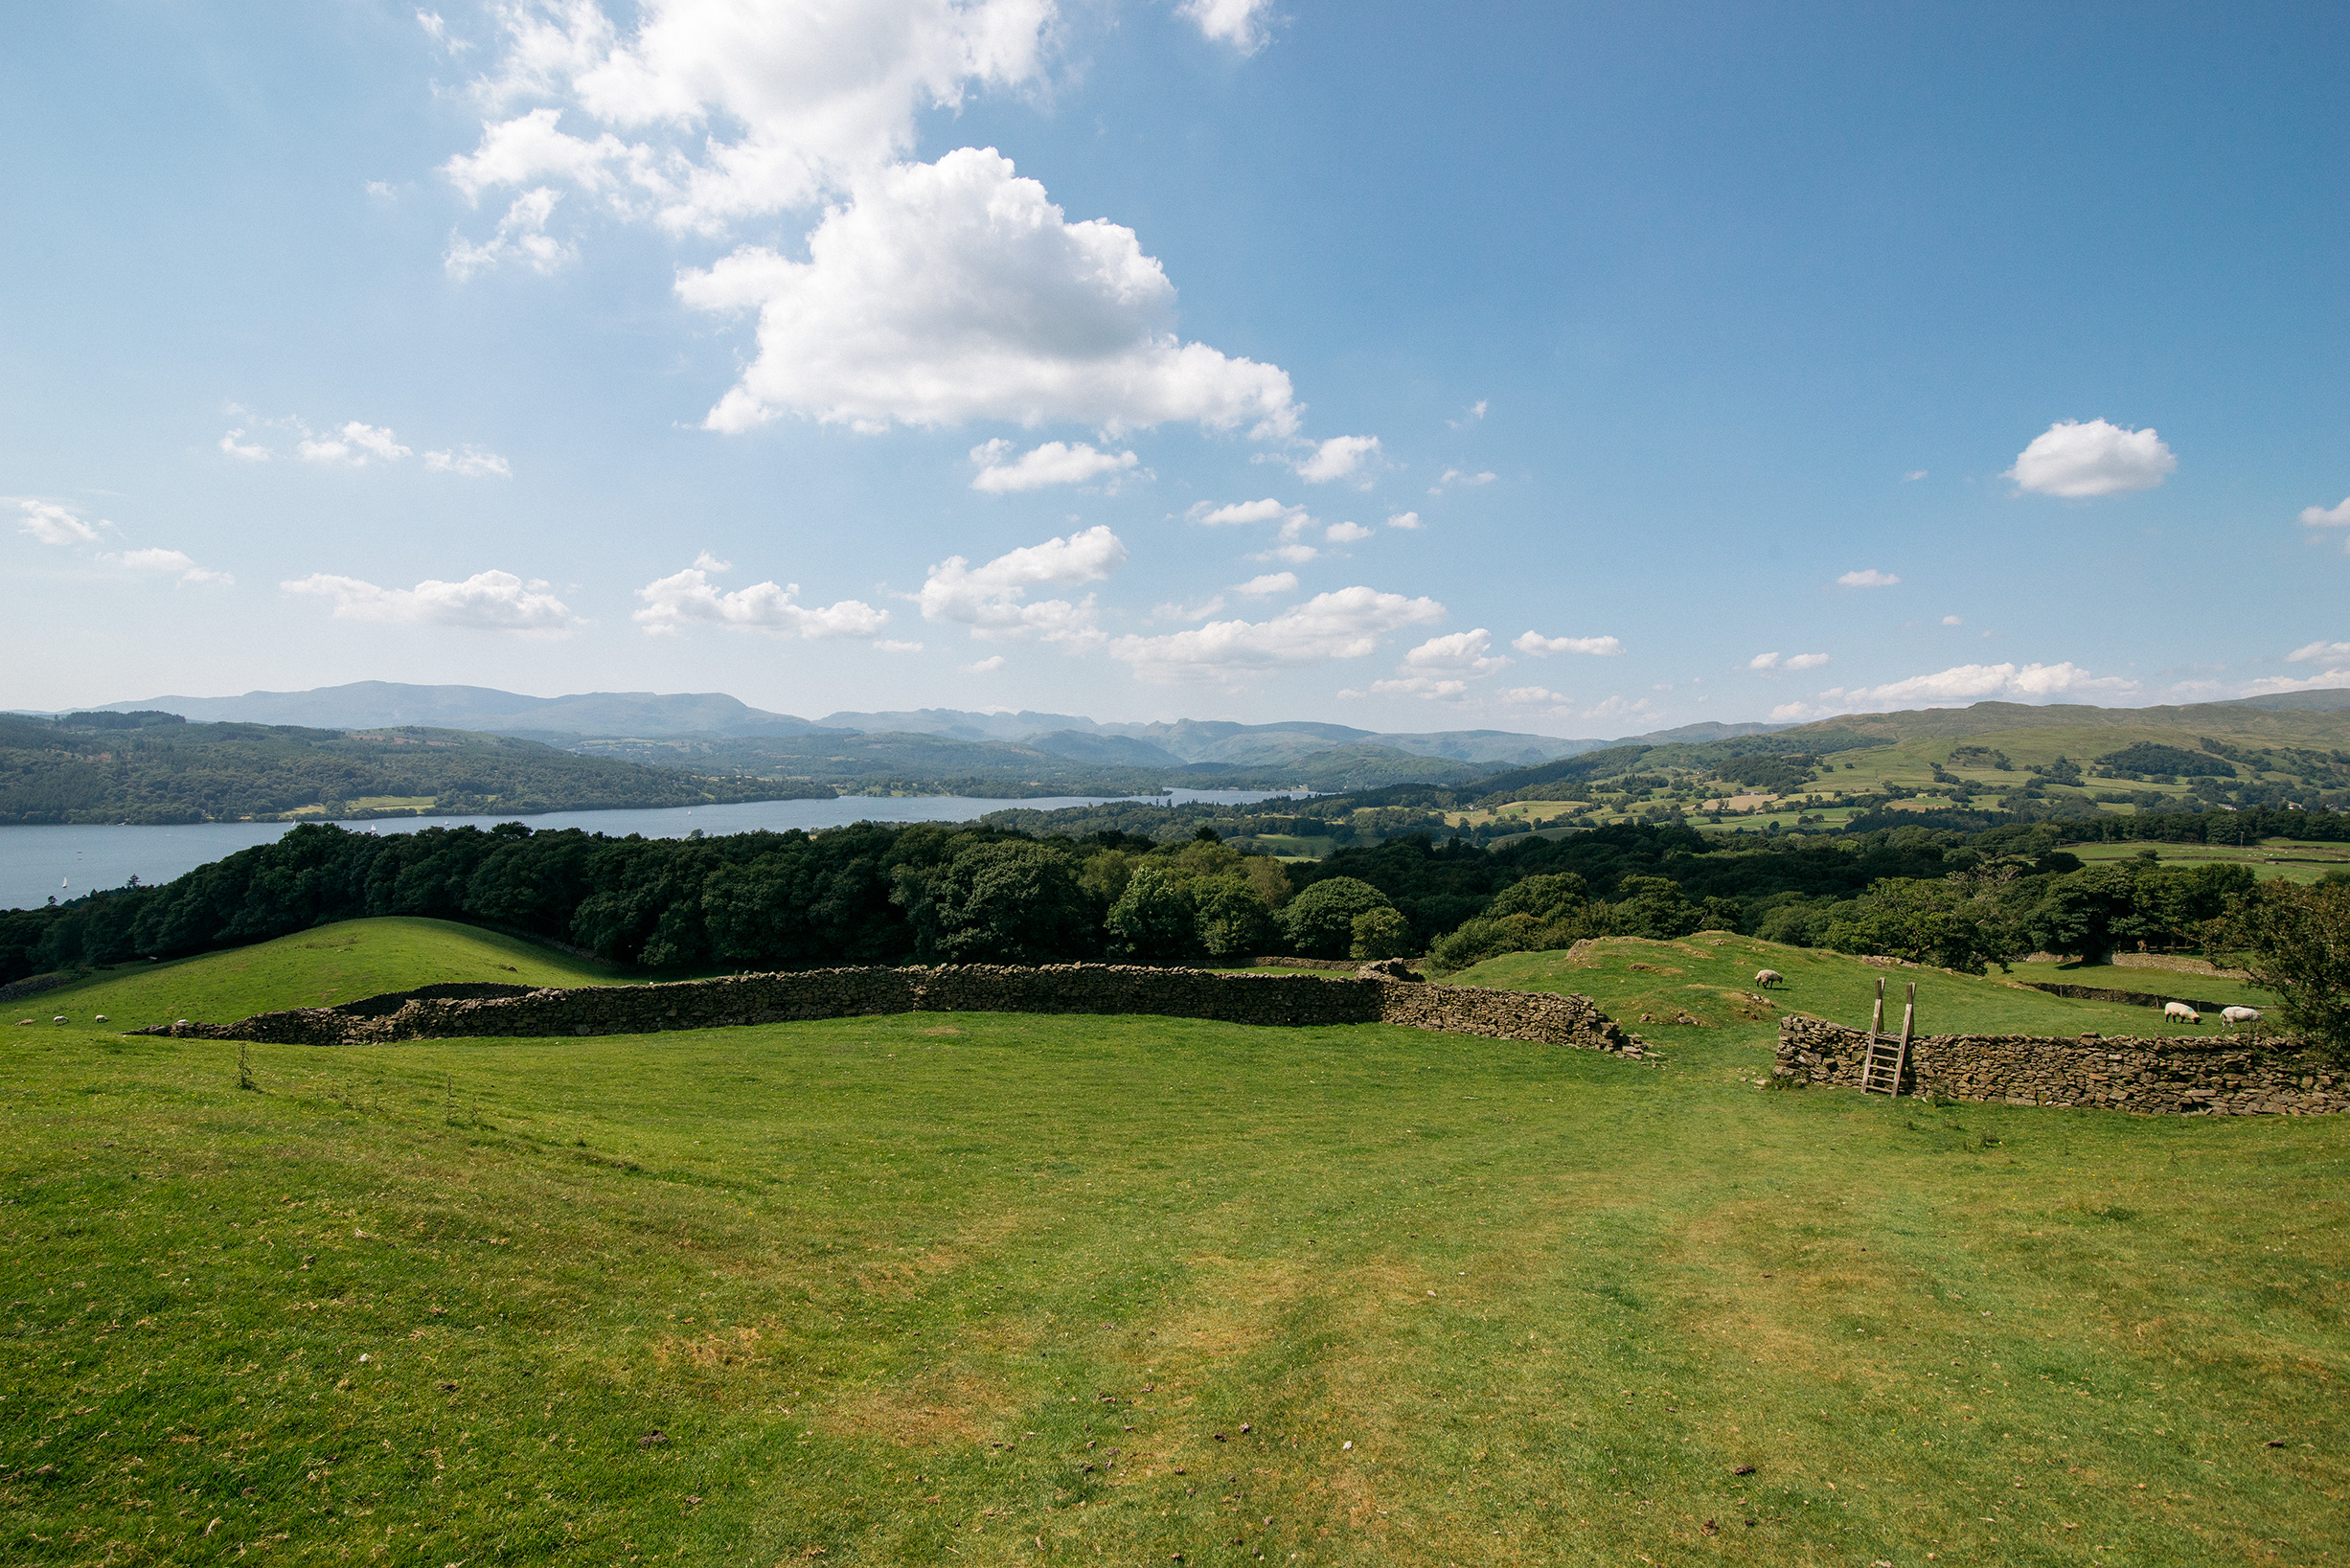 Hiking Private Land in Windermere, Lake District, United Kingdom